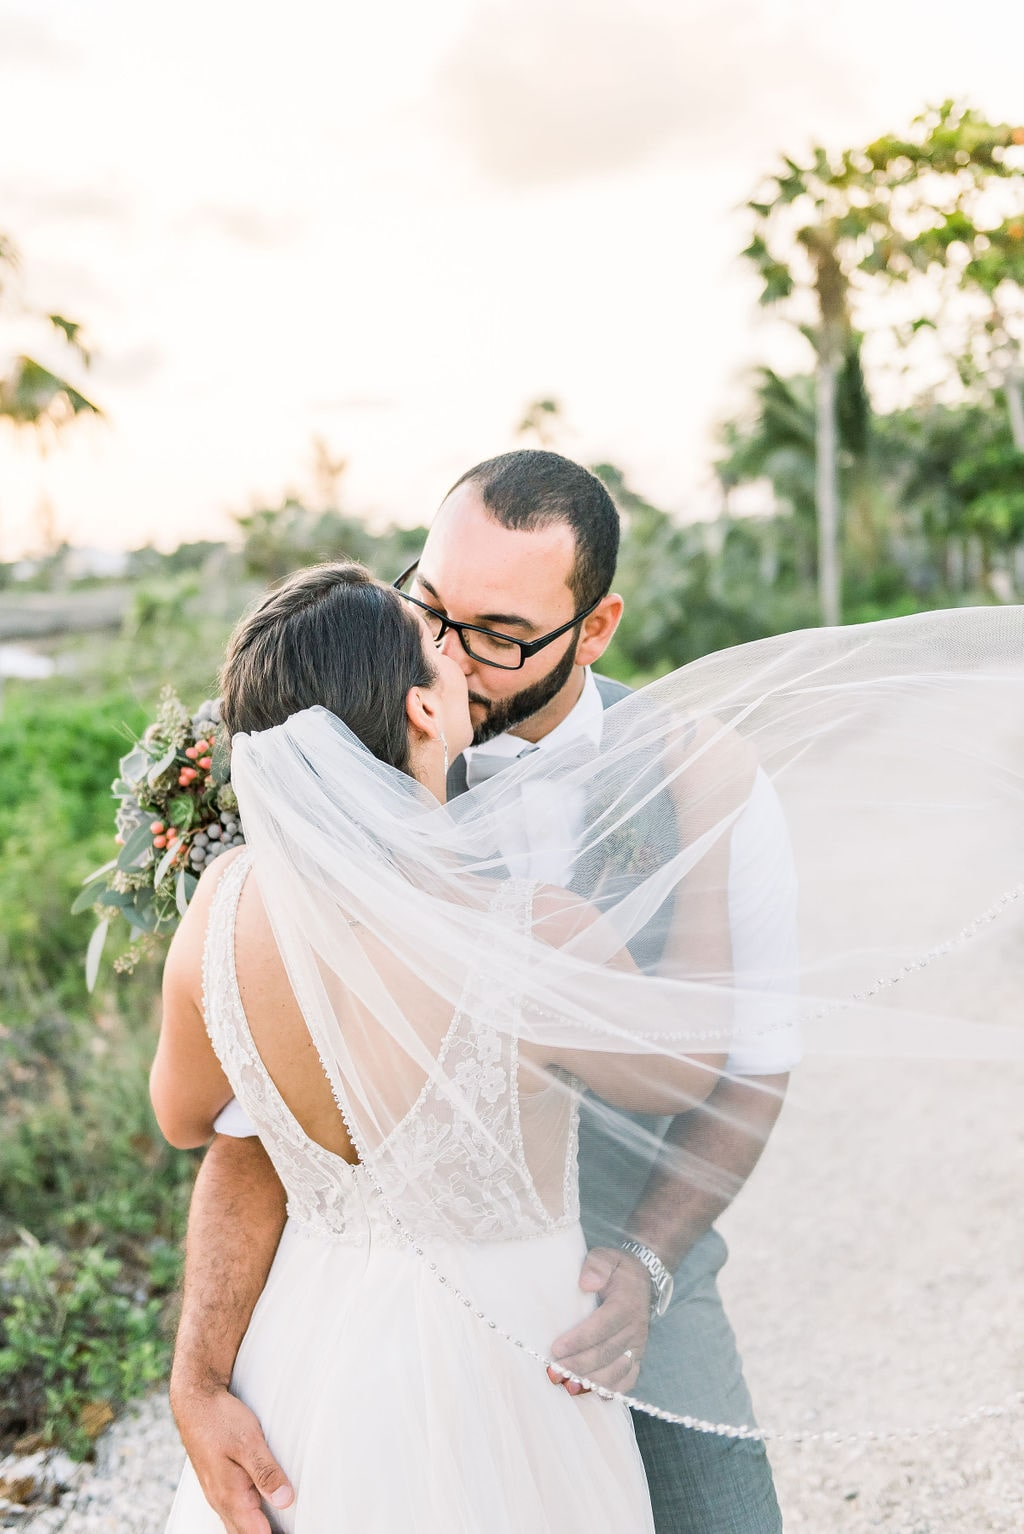 Tropical Wedding in the Cayman Islands with a Rustic Twist, Photography by Jenna Leigh Photography for Luxury Destination Wedding Blog Adriana Weddingsiana Weddings